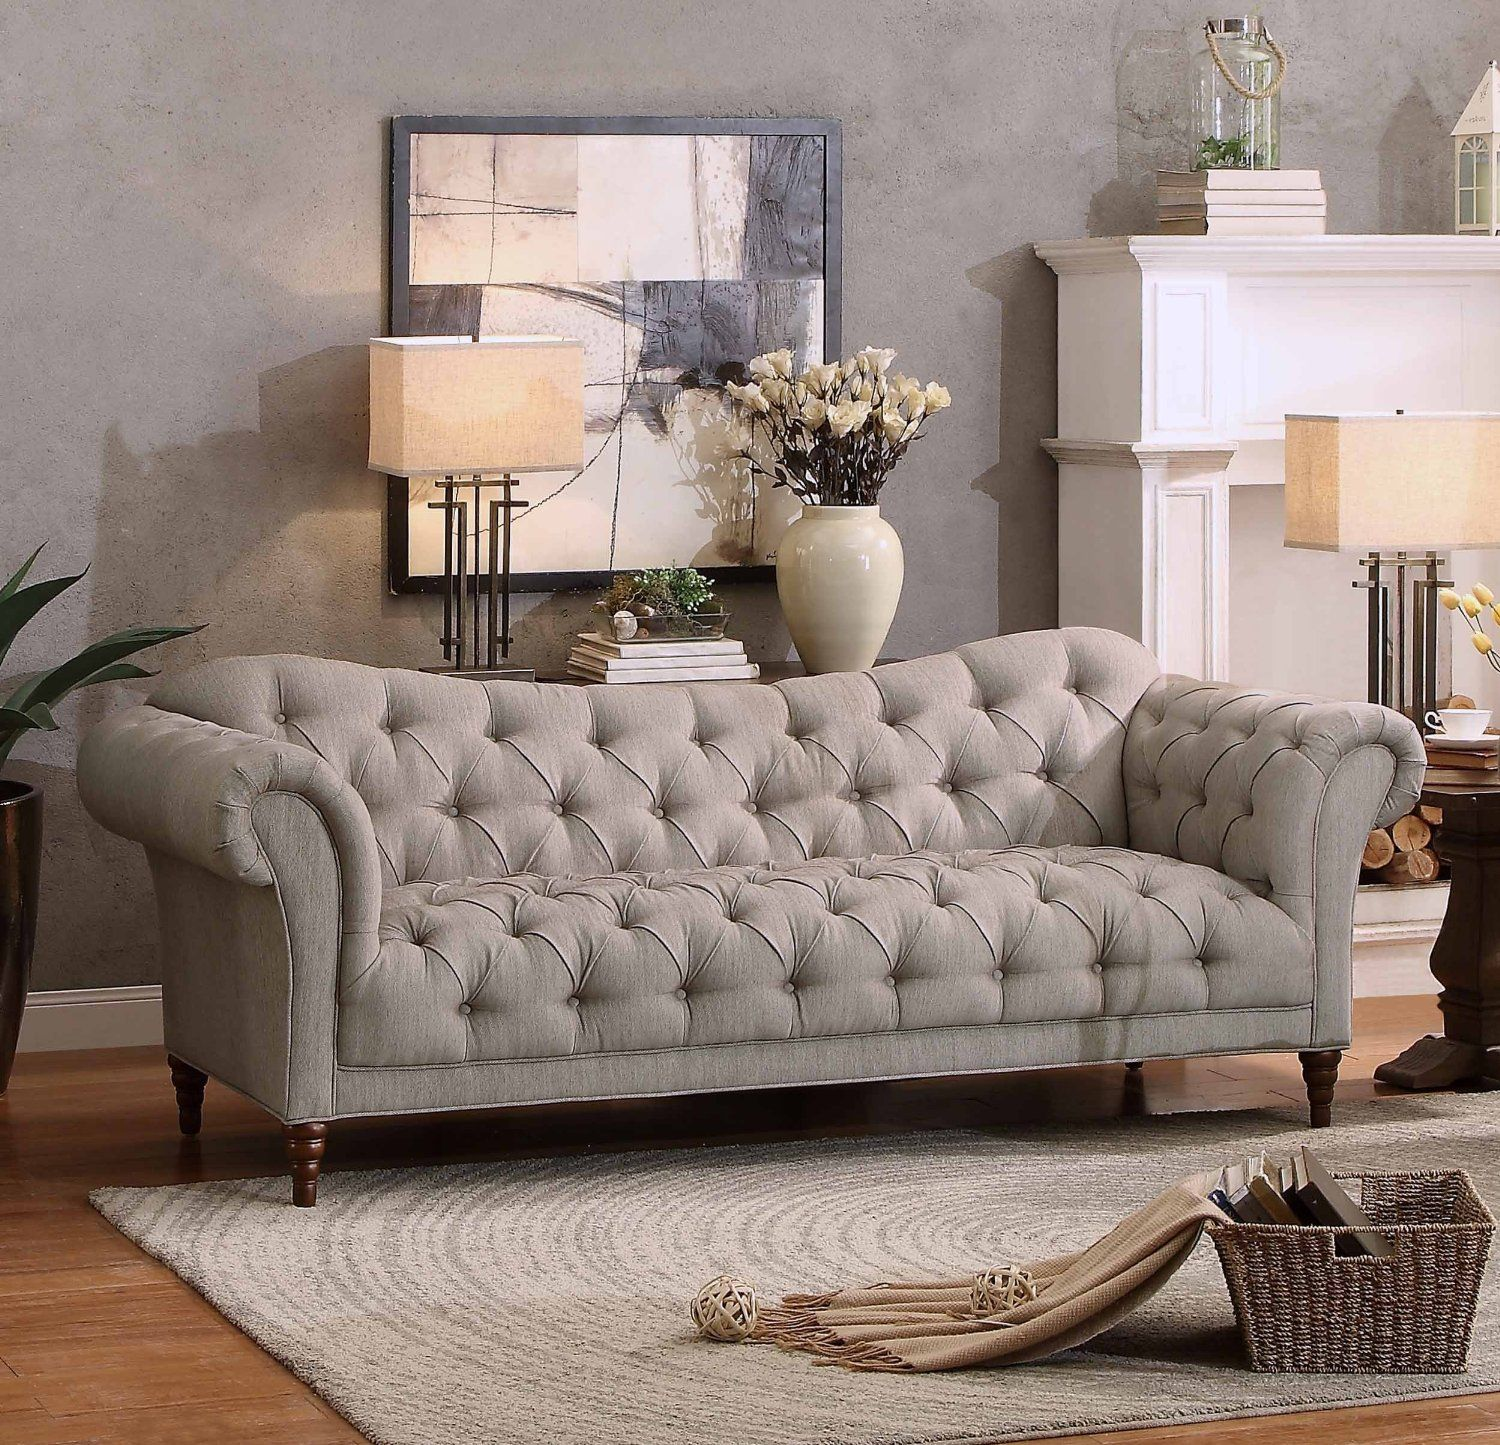 Amazon.com: Homelegance Chesterfield Traditional Style Sofa With Tufting  And Rolled Arm Design, Brown/Almond: Kitchen U0026 Dining